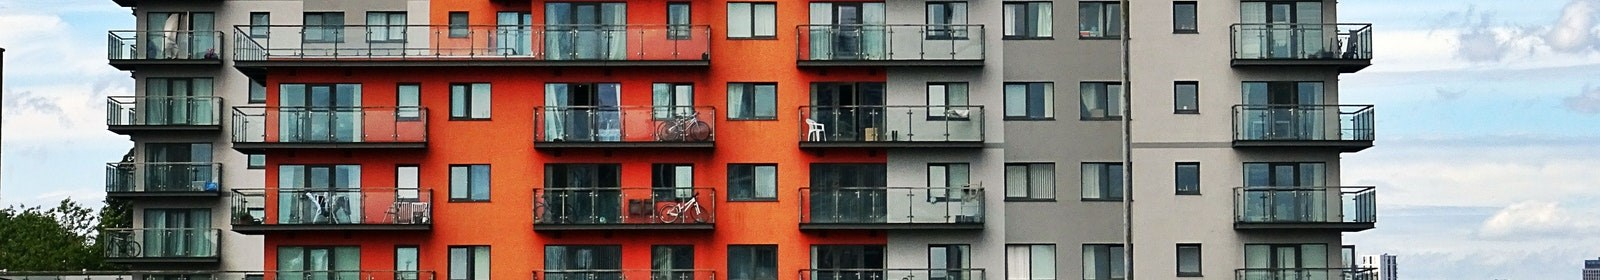 Factors to consider before purchasing an apartment